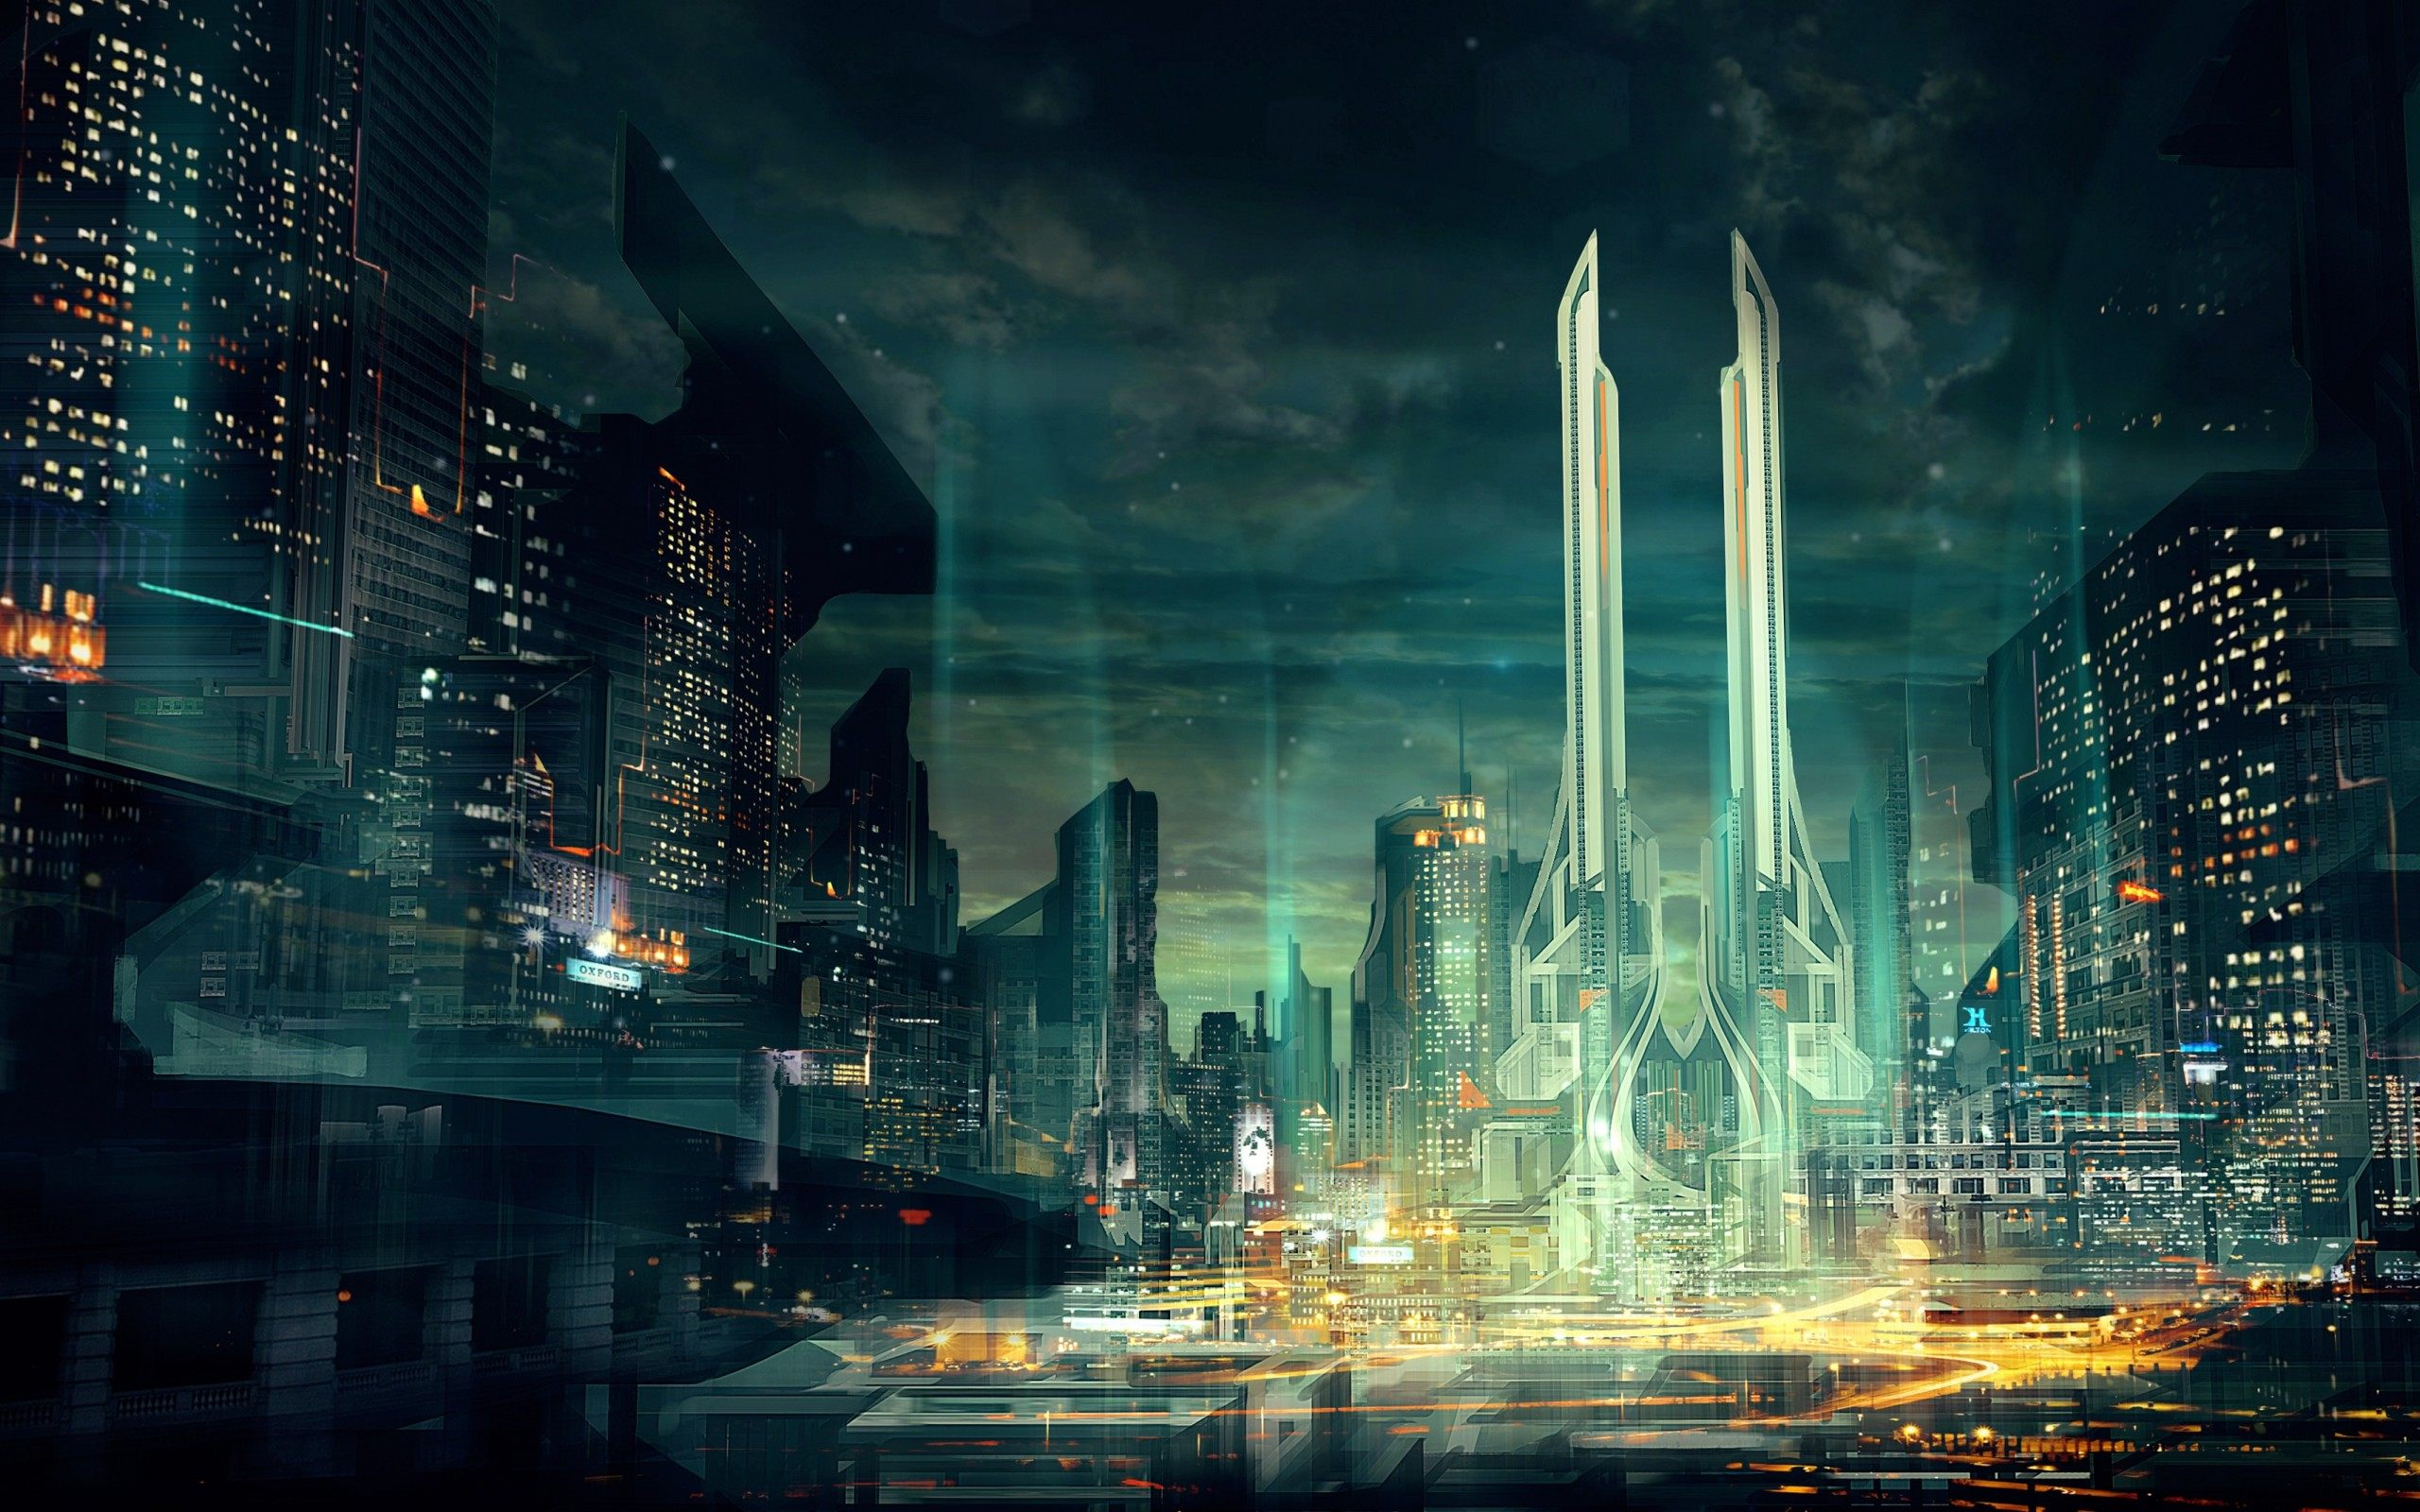 2560x1600 - Sci Fi Building Wallpapers 14